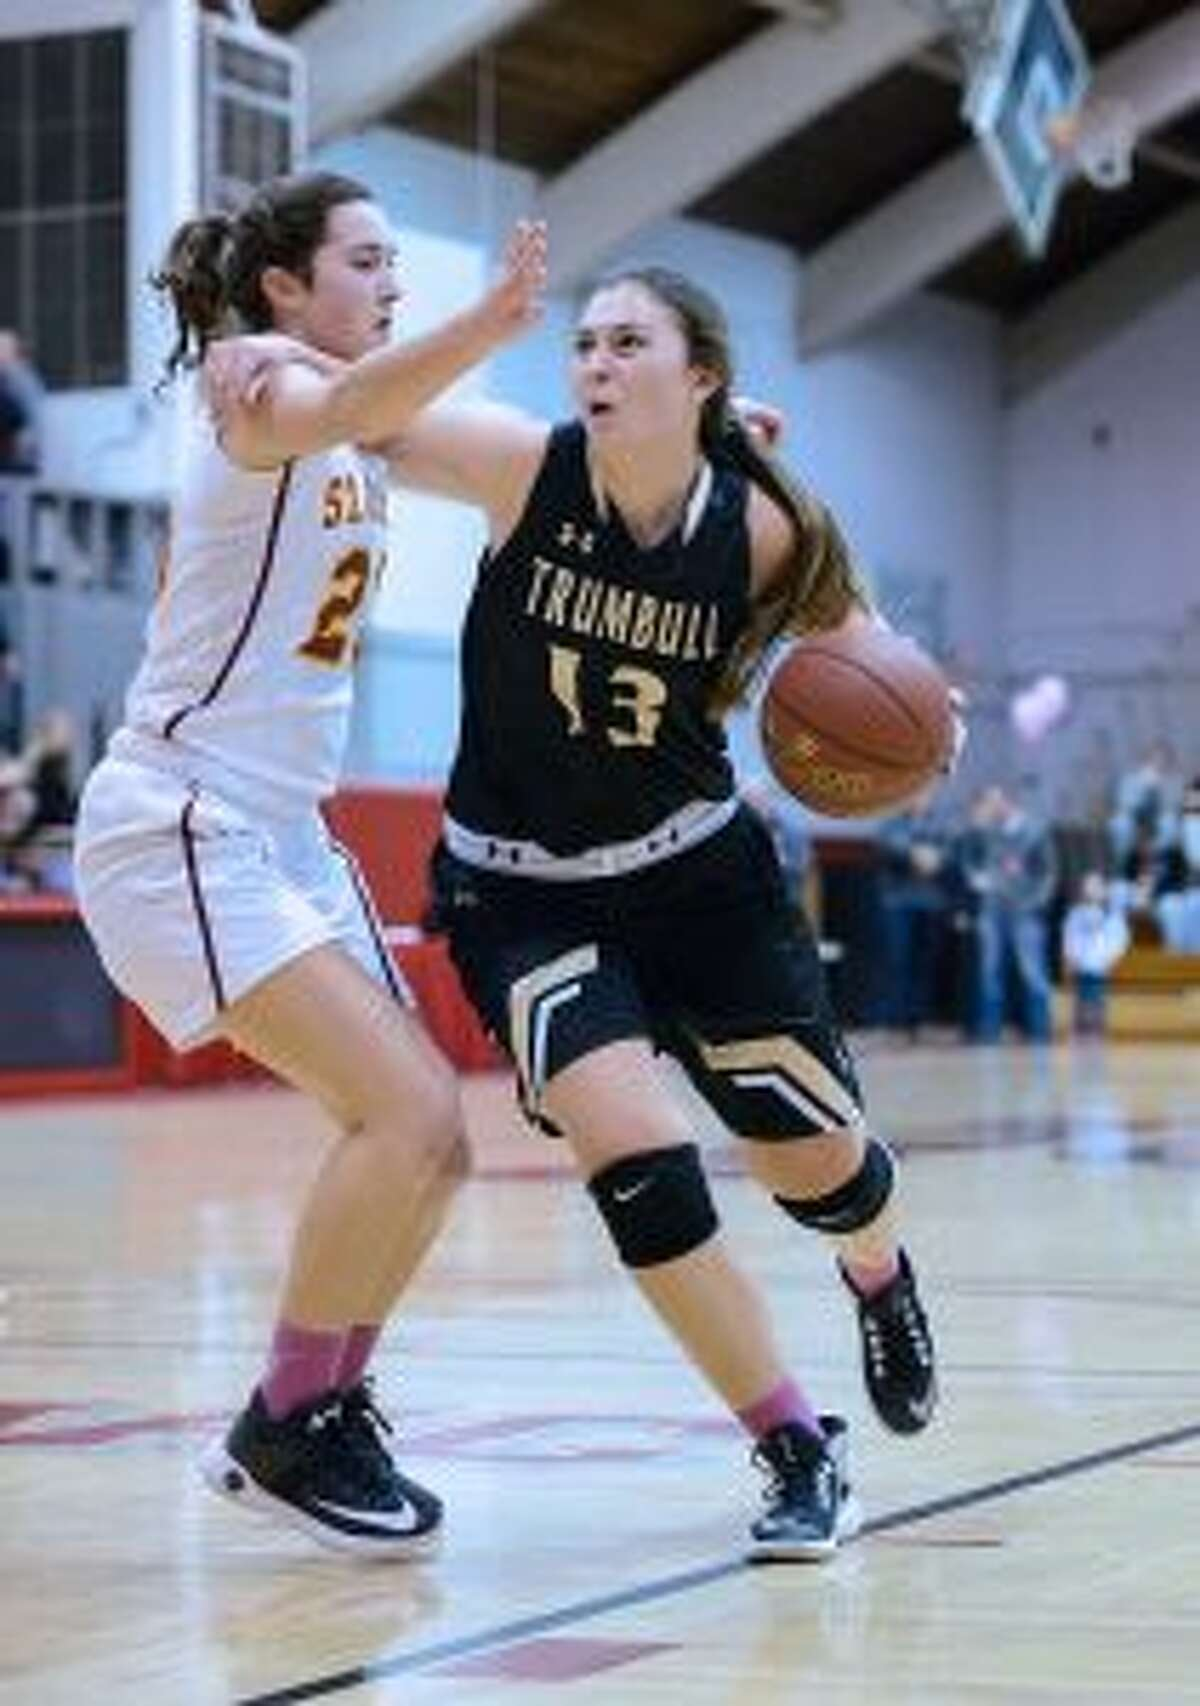 Trumbull's Claudia Tucci (13) scored 25 points in the win over Wilton. - David G. Whitham photo